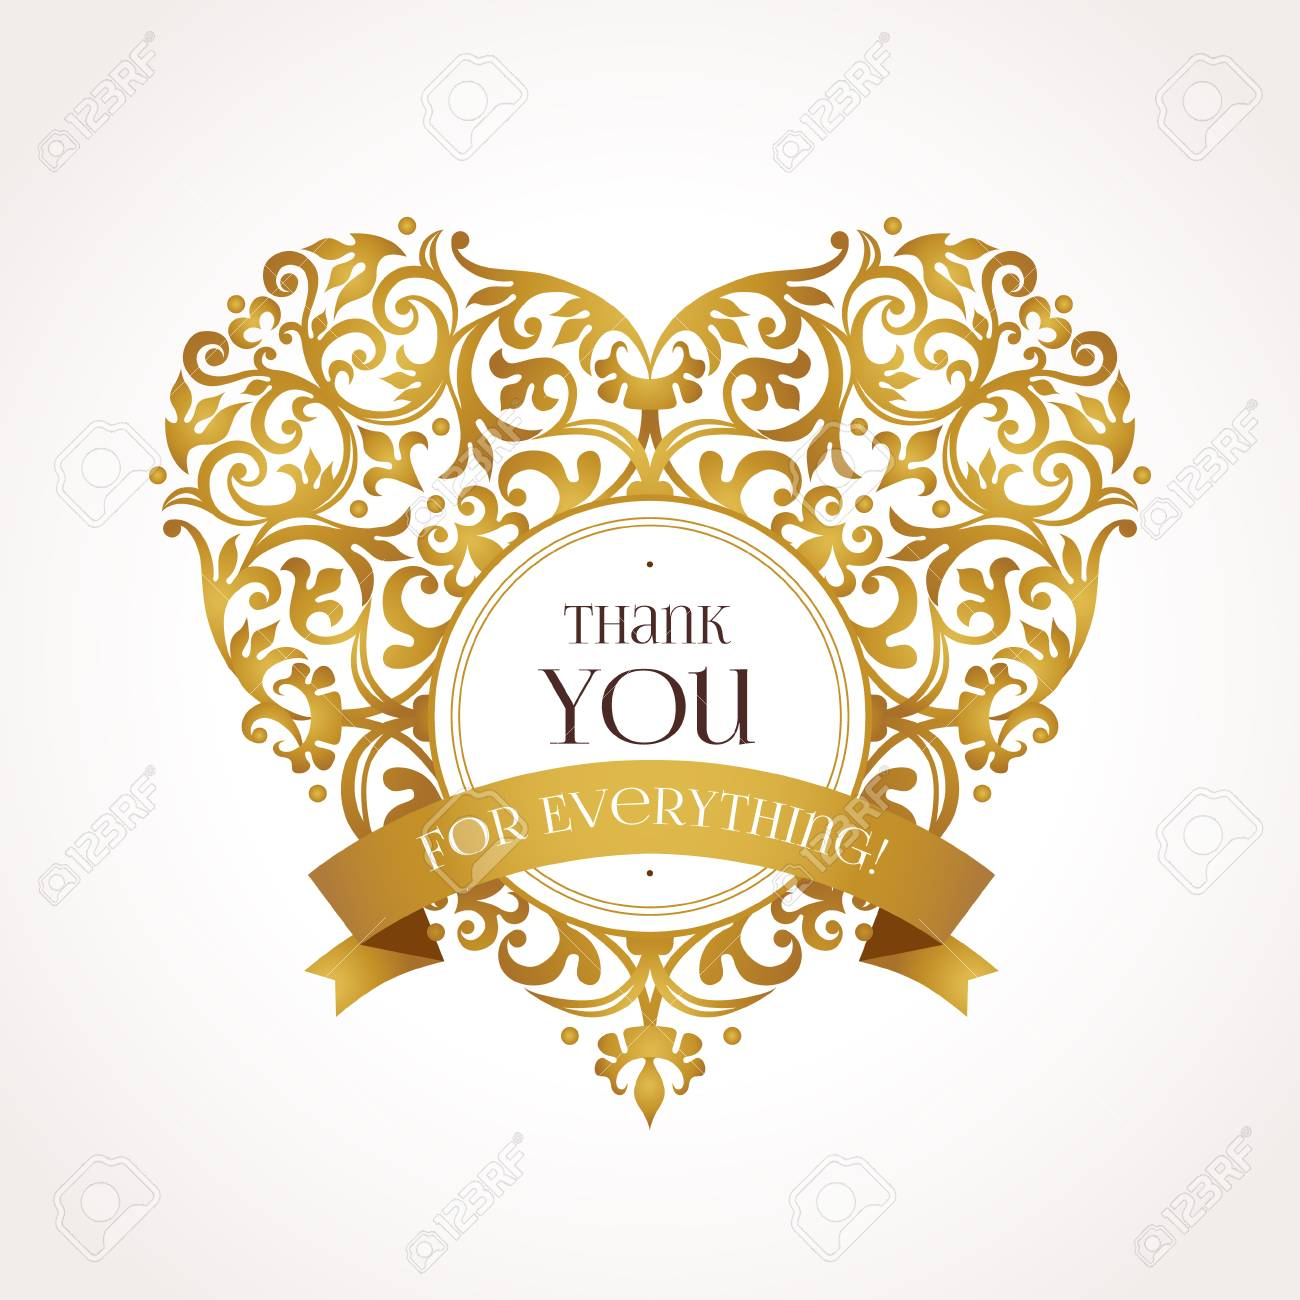 Ornate Vector Heart In Victorian Style Elegant Element For Design Place Text